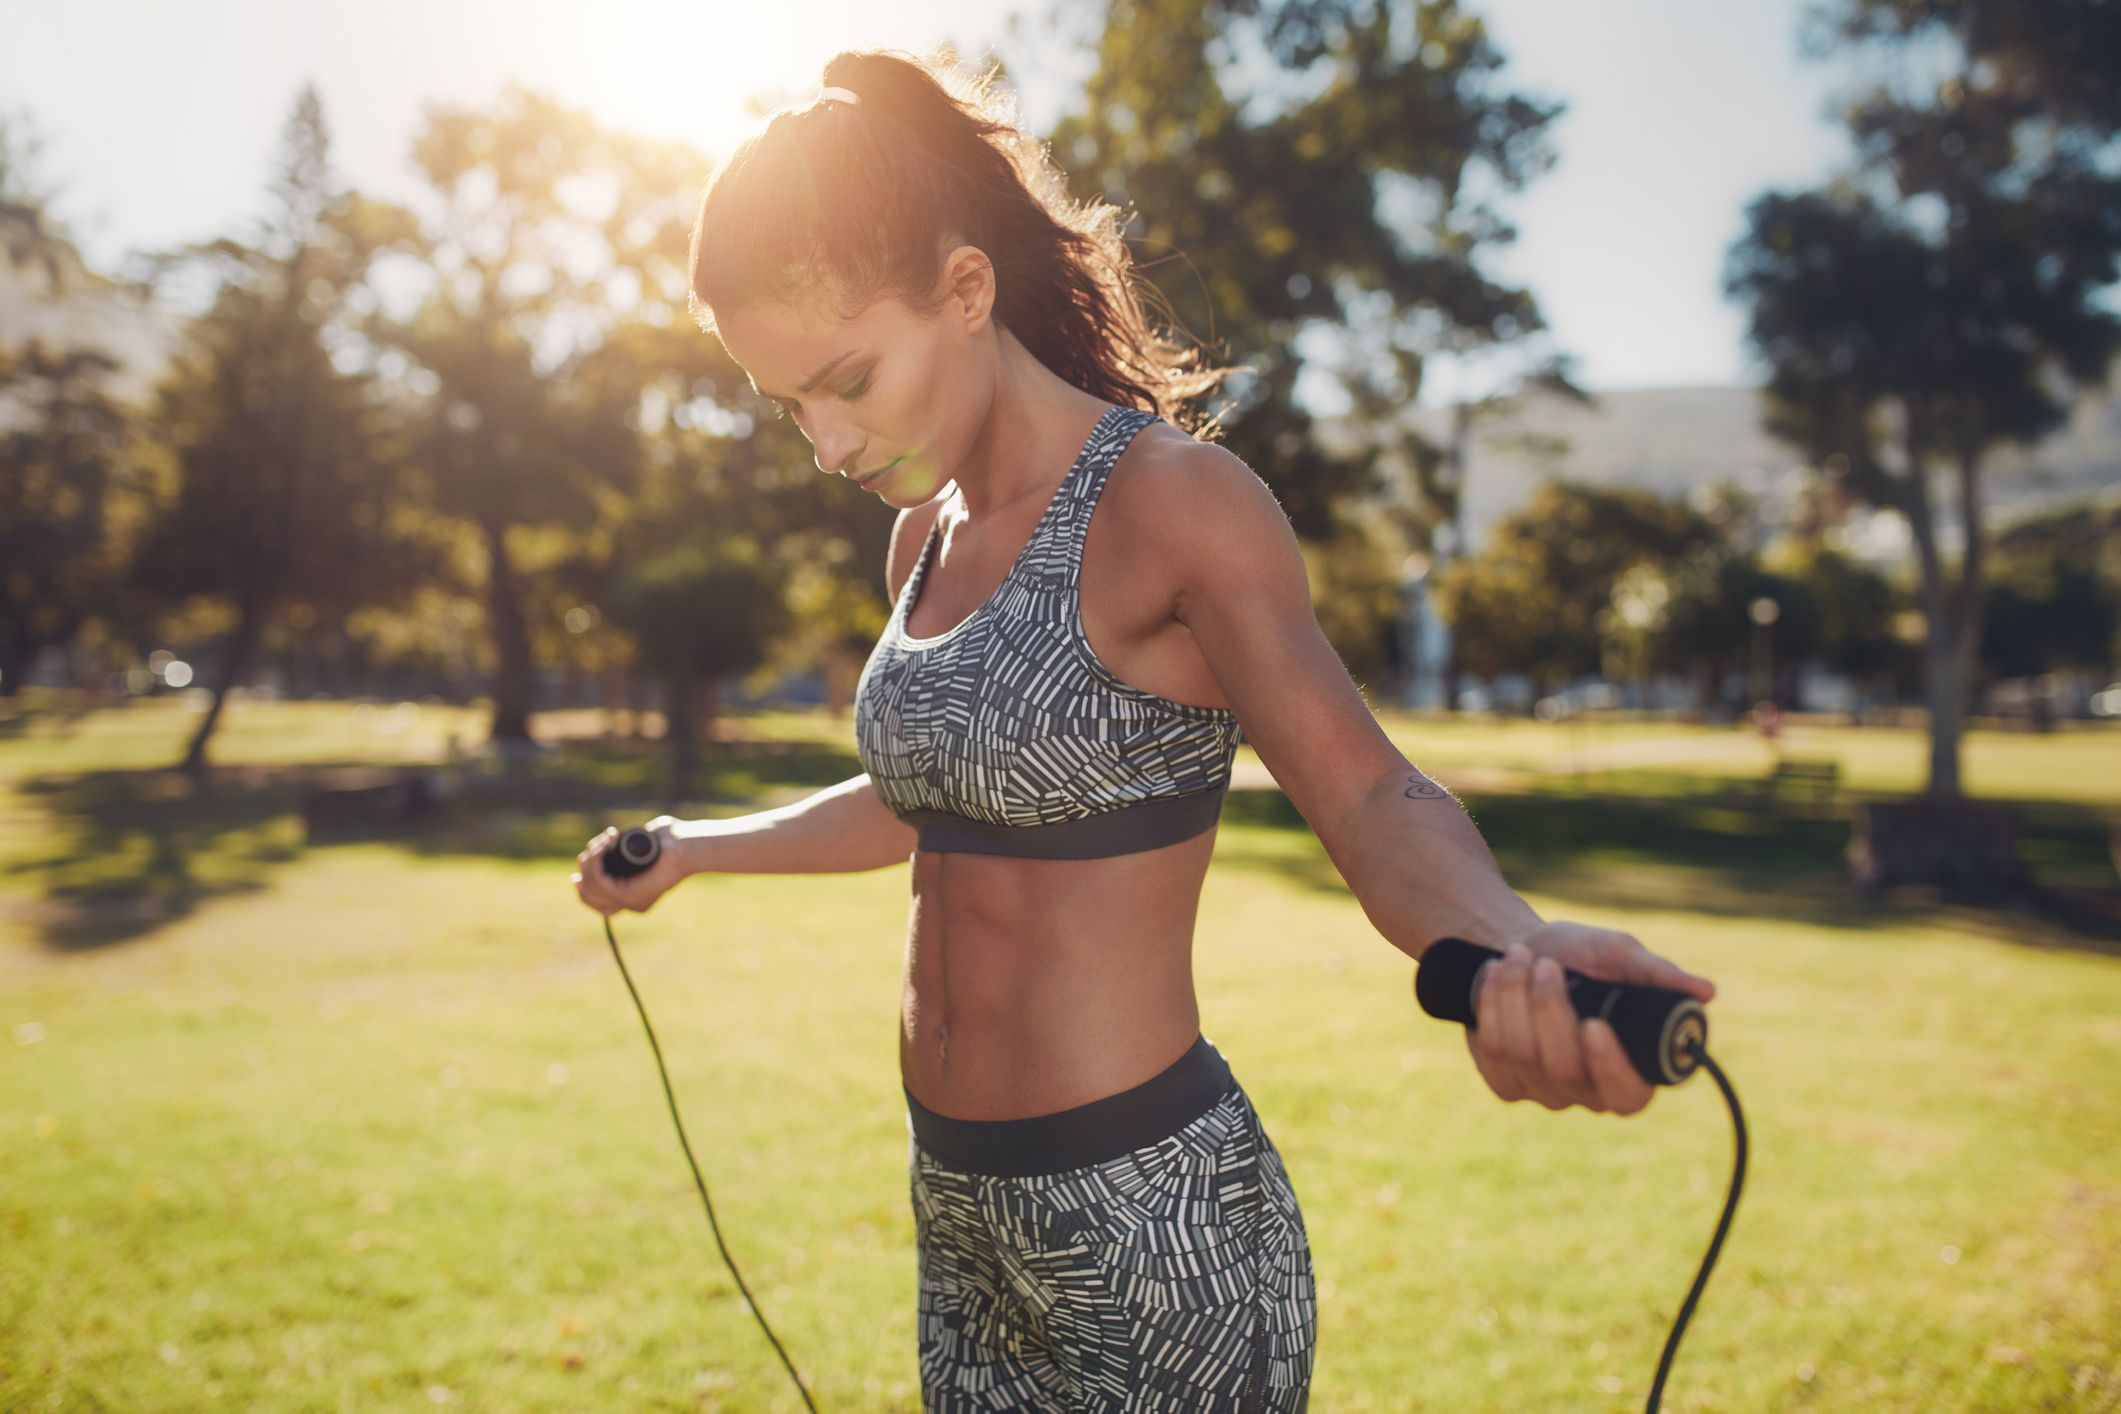 Skipping Rope Benefits: Why It's Worth Investing in a £2.99 Rope